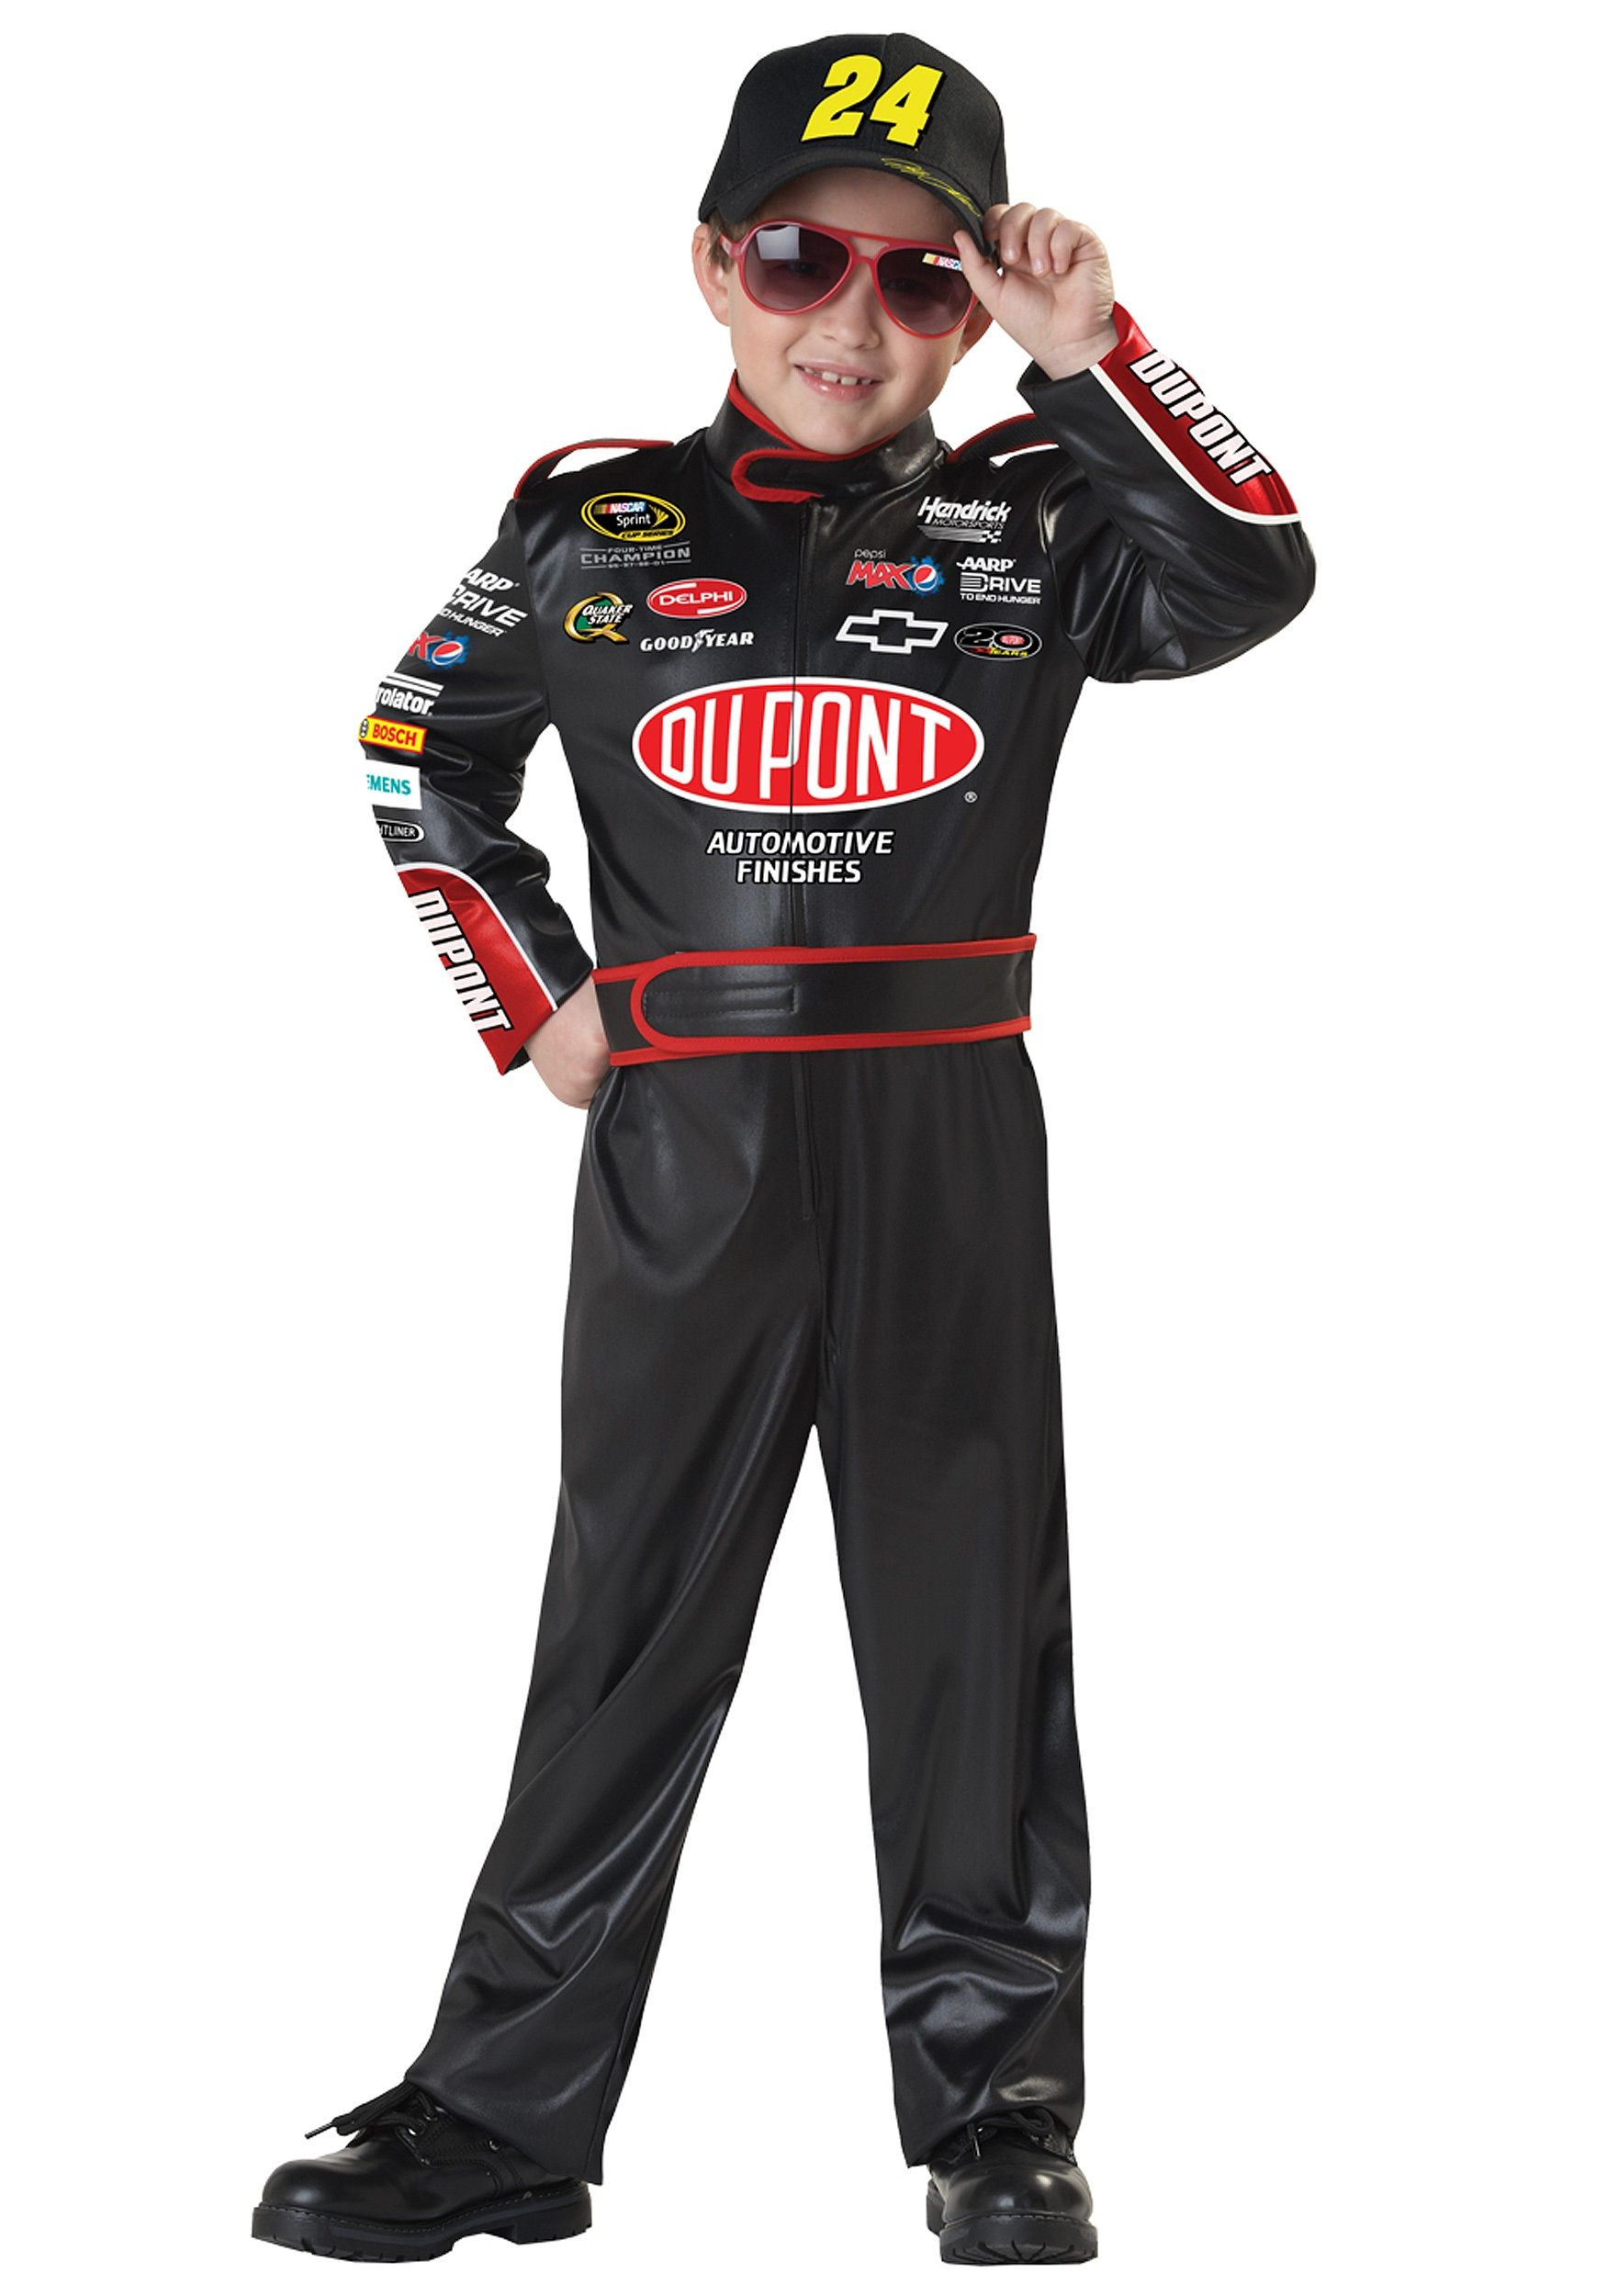 nascar jeff gordon child costume includes jumpsuit with team logos and attached belt printed cap